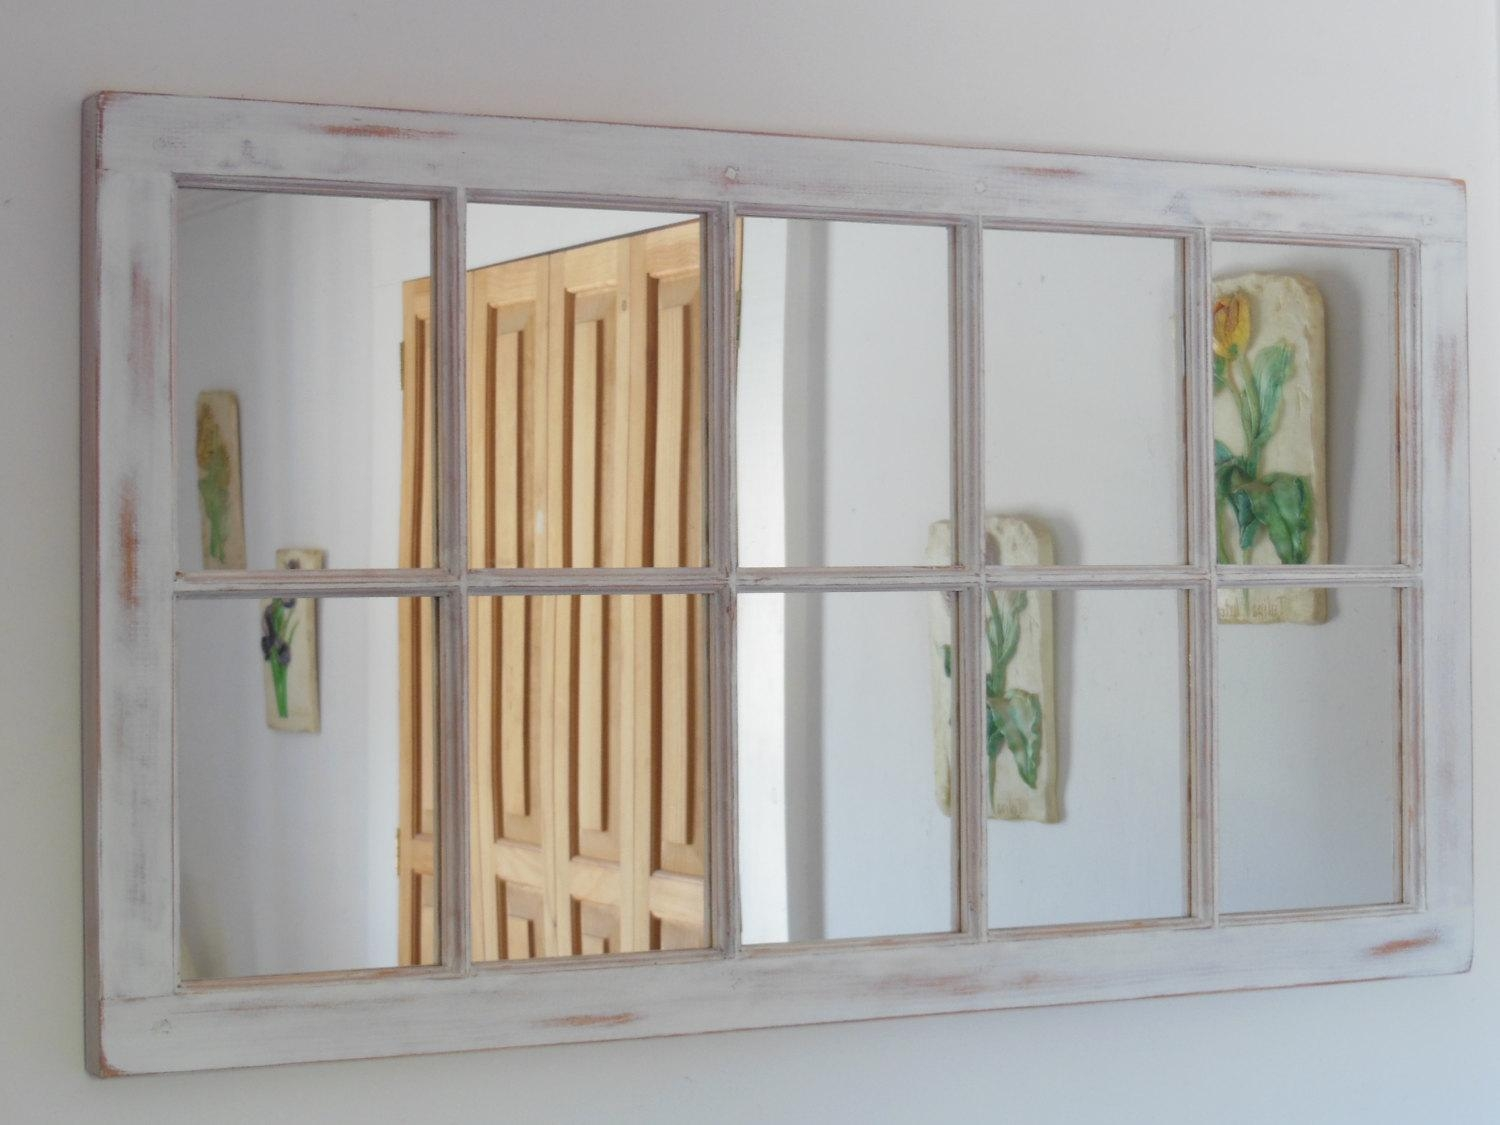 White Distressed Framed Mirror Window Mirror Window Pane Inside Shabby Chic White Mirrors (Image 19 of 20)